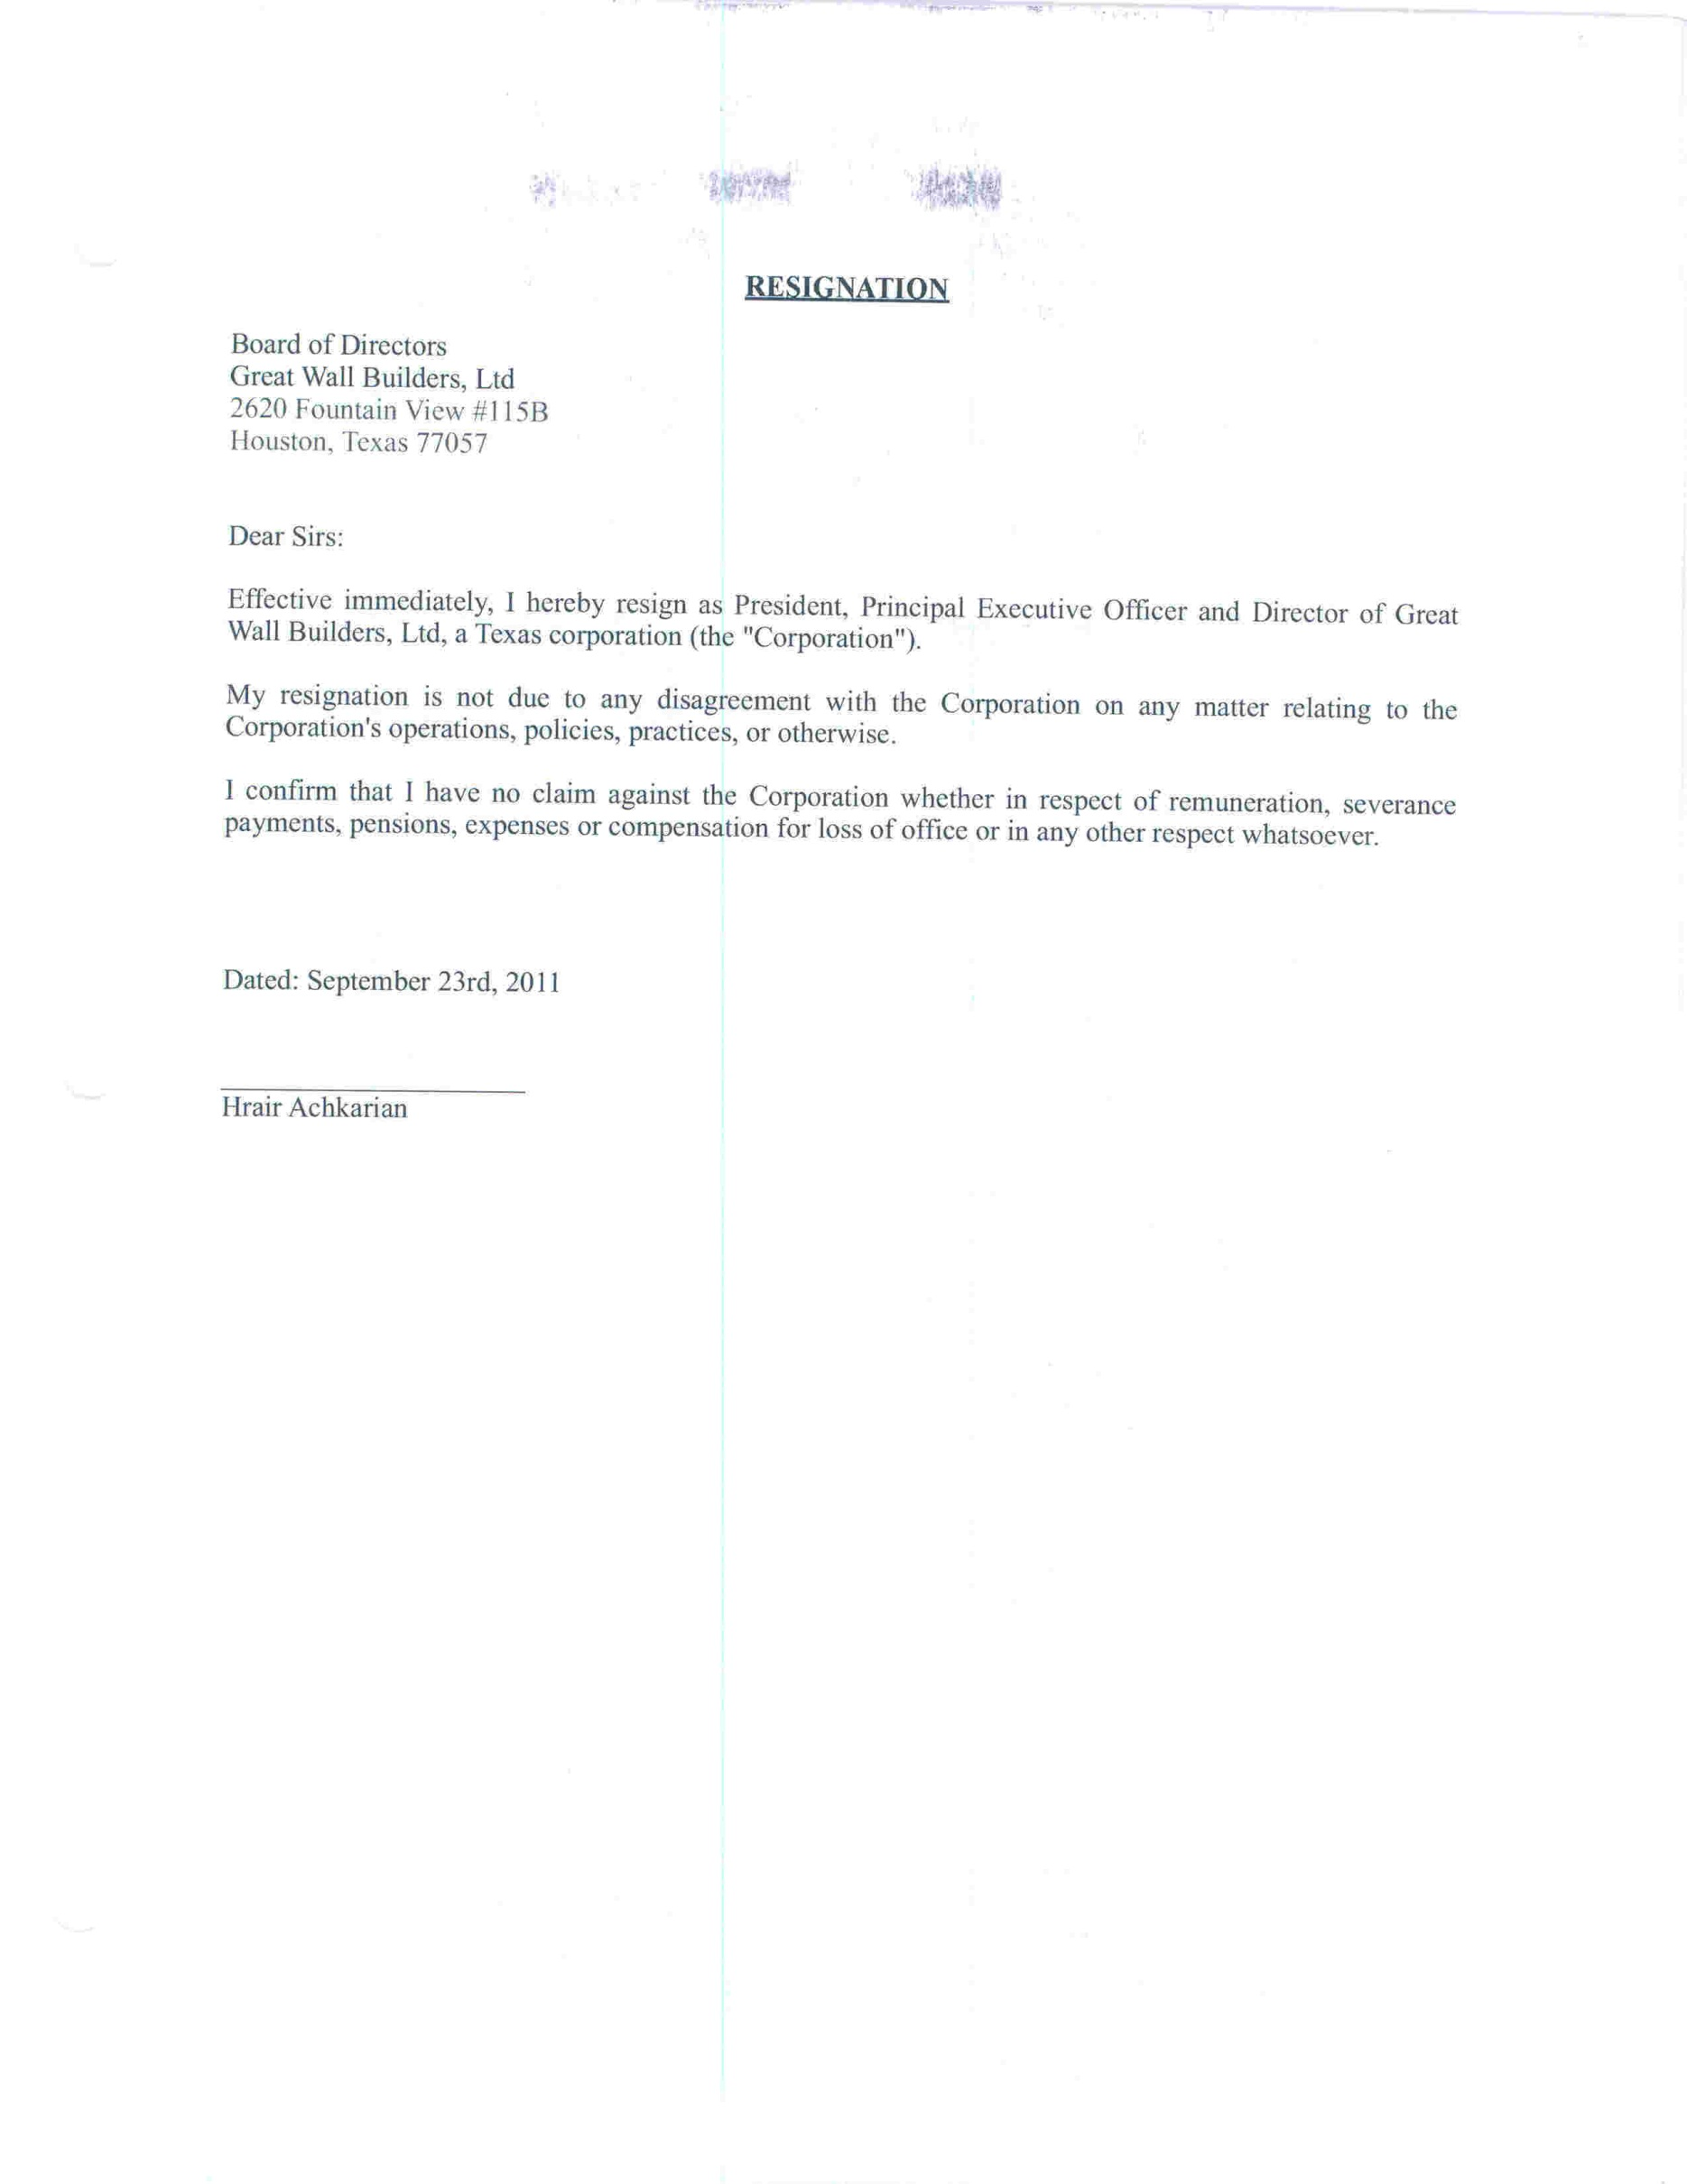 Regignation Letter Resignation Letter Form Cover Letter For Internal